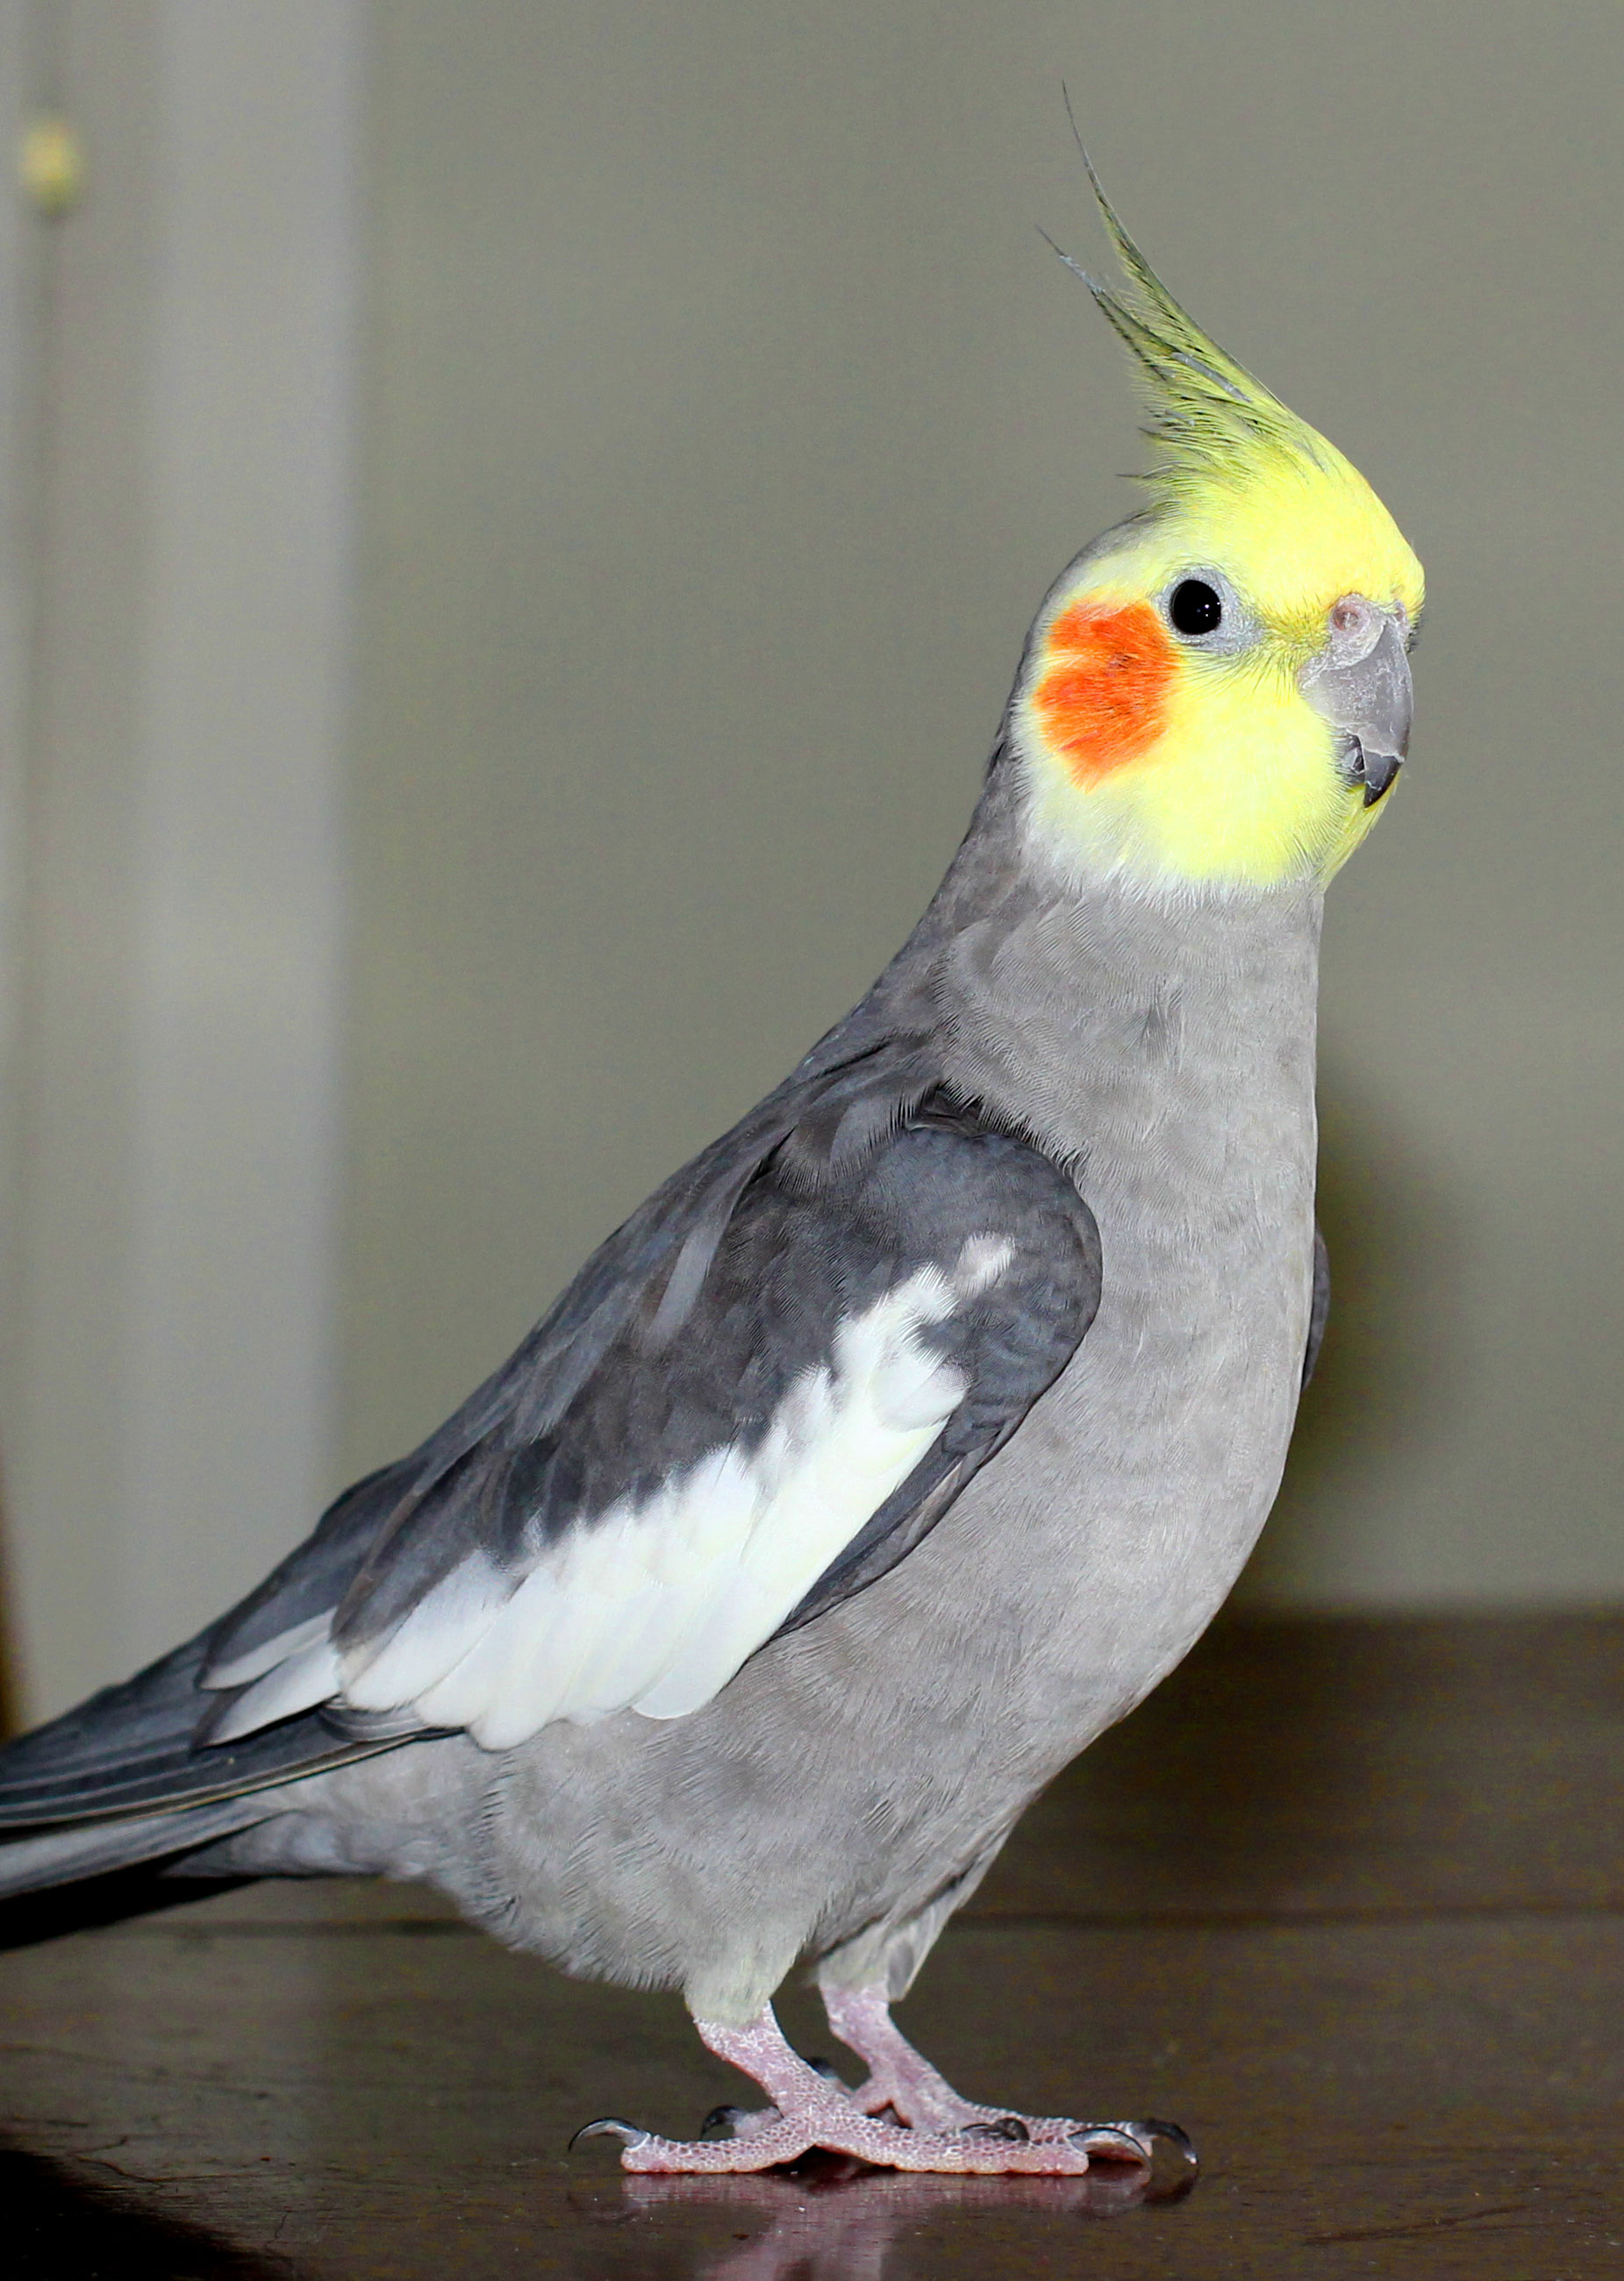 Billy, the self-pleasuring cockatiel and the muse behind the study. Adam Fisher